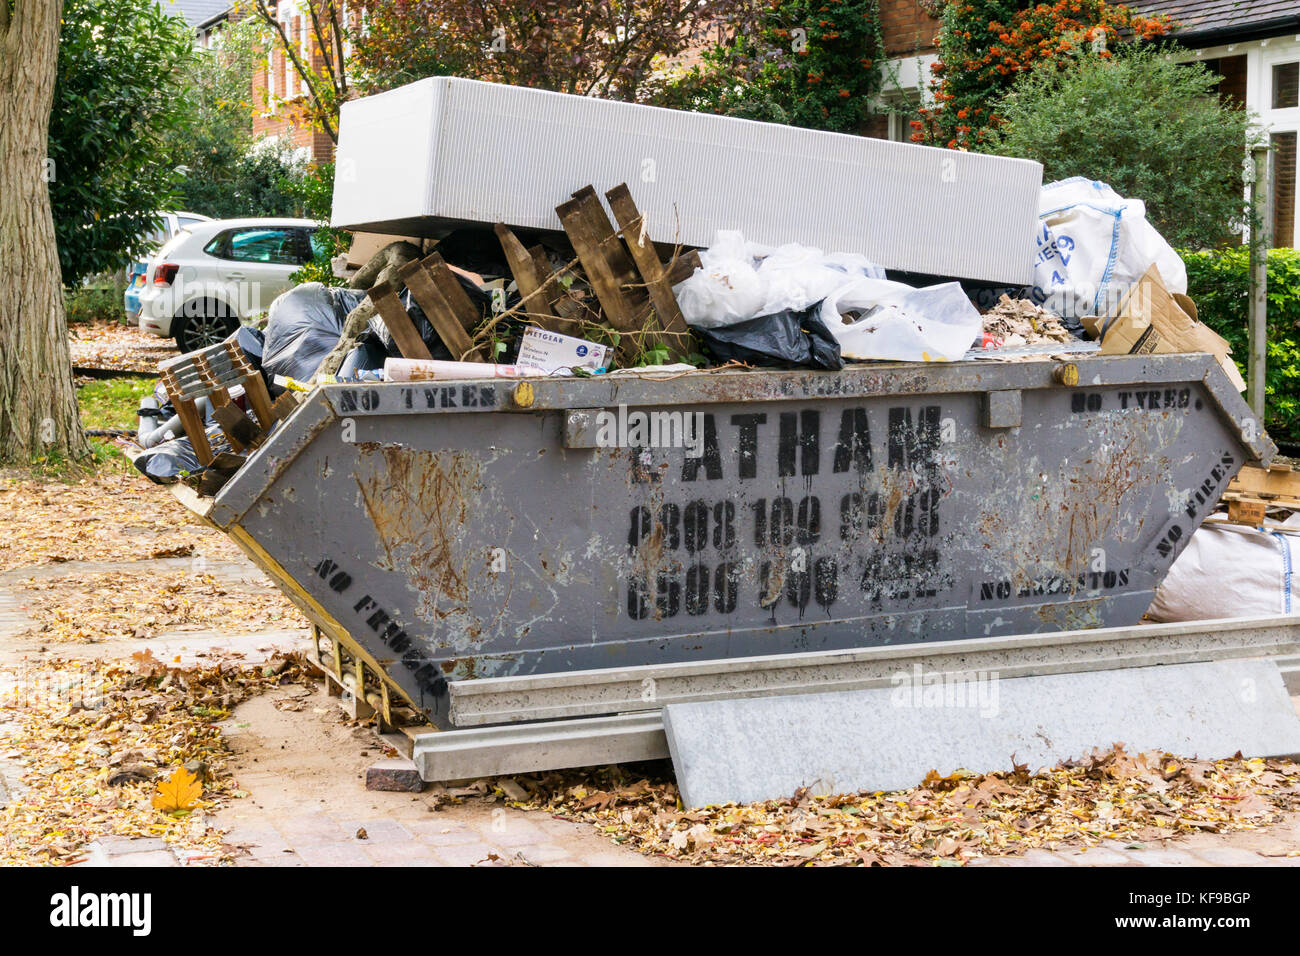 A full waste skip with an old mattress on top of it. - Stock Image